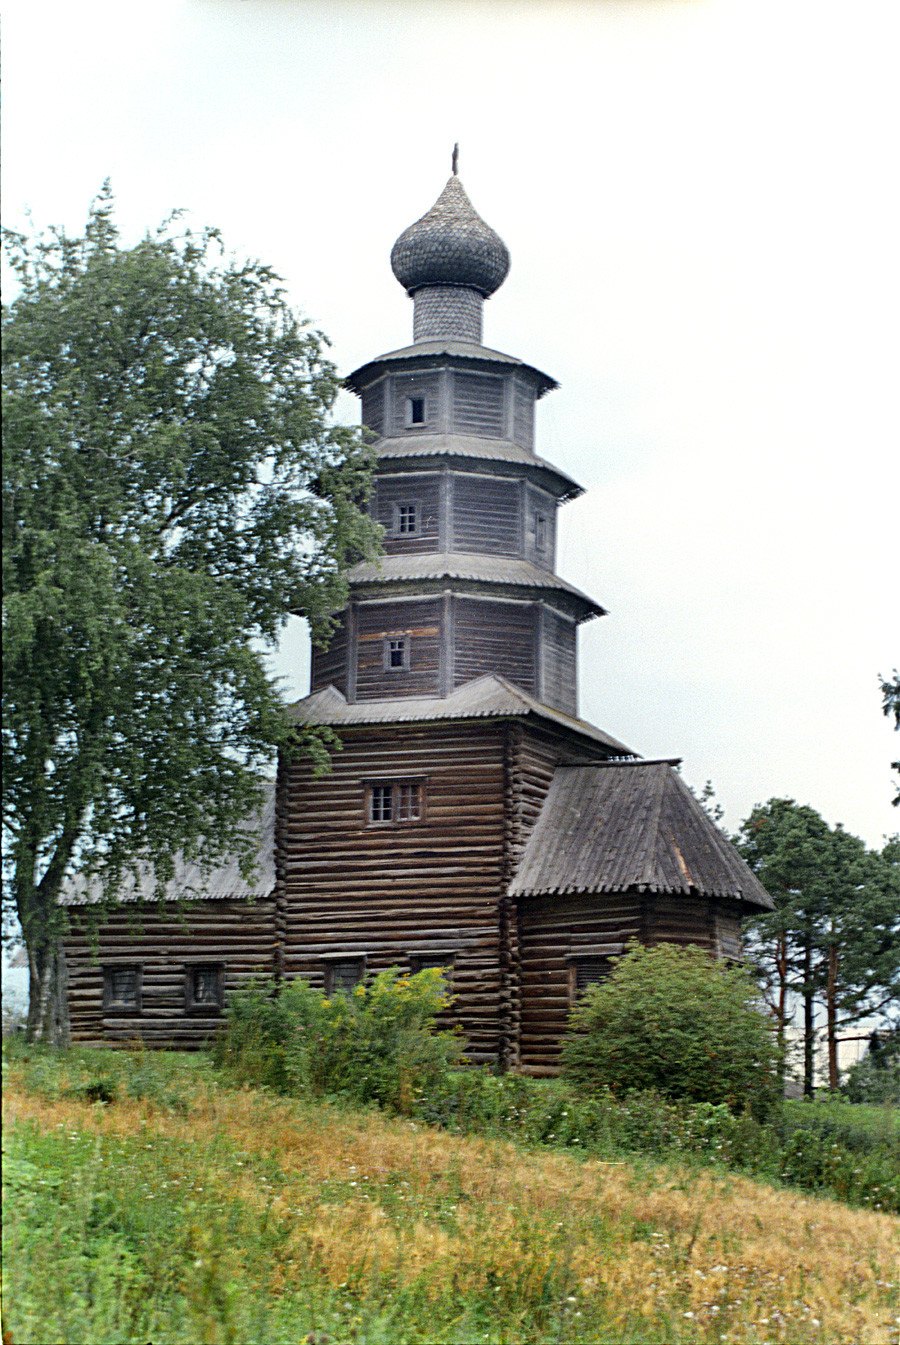 Church of the Tikhvin Icon (Old Church of the Ascension), southeast view.  Aug. 18, 2006.